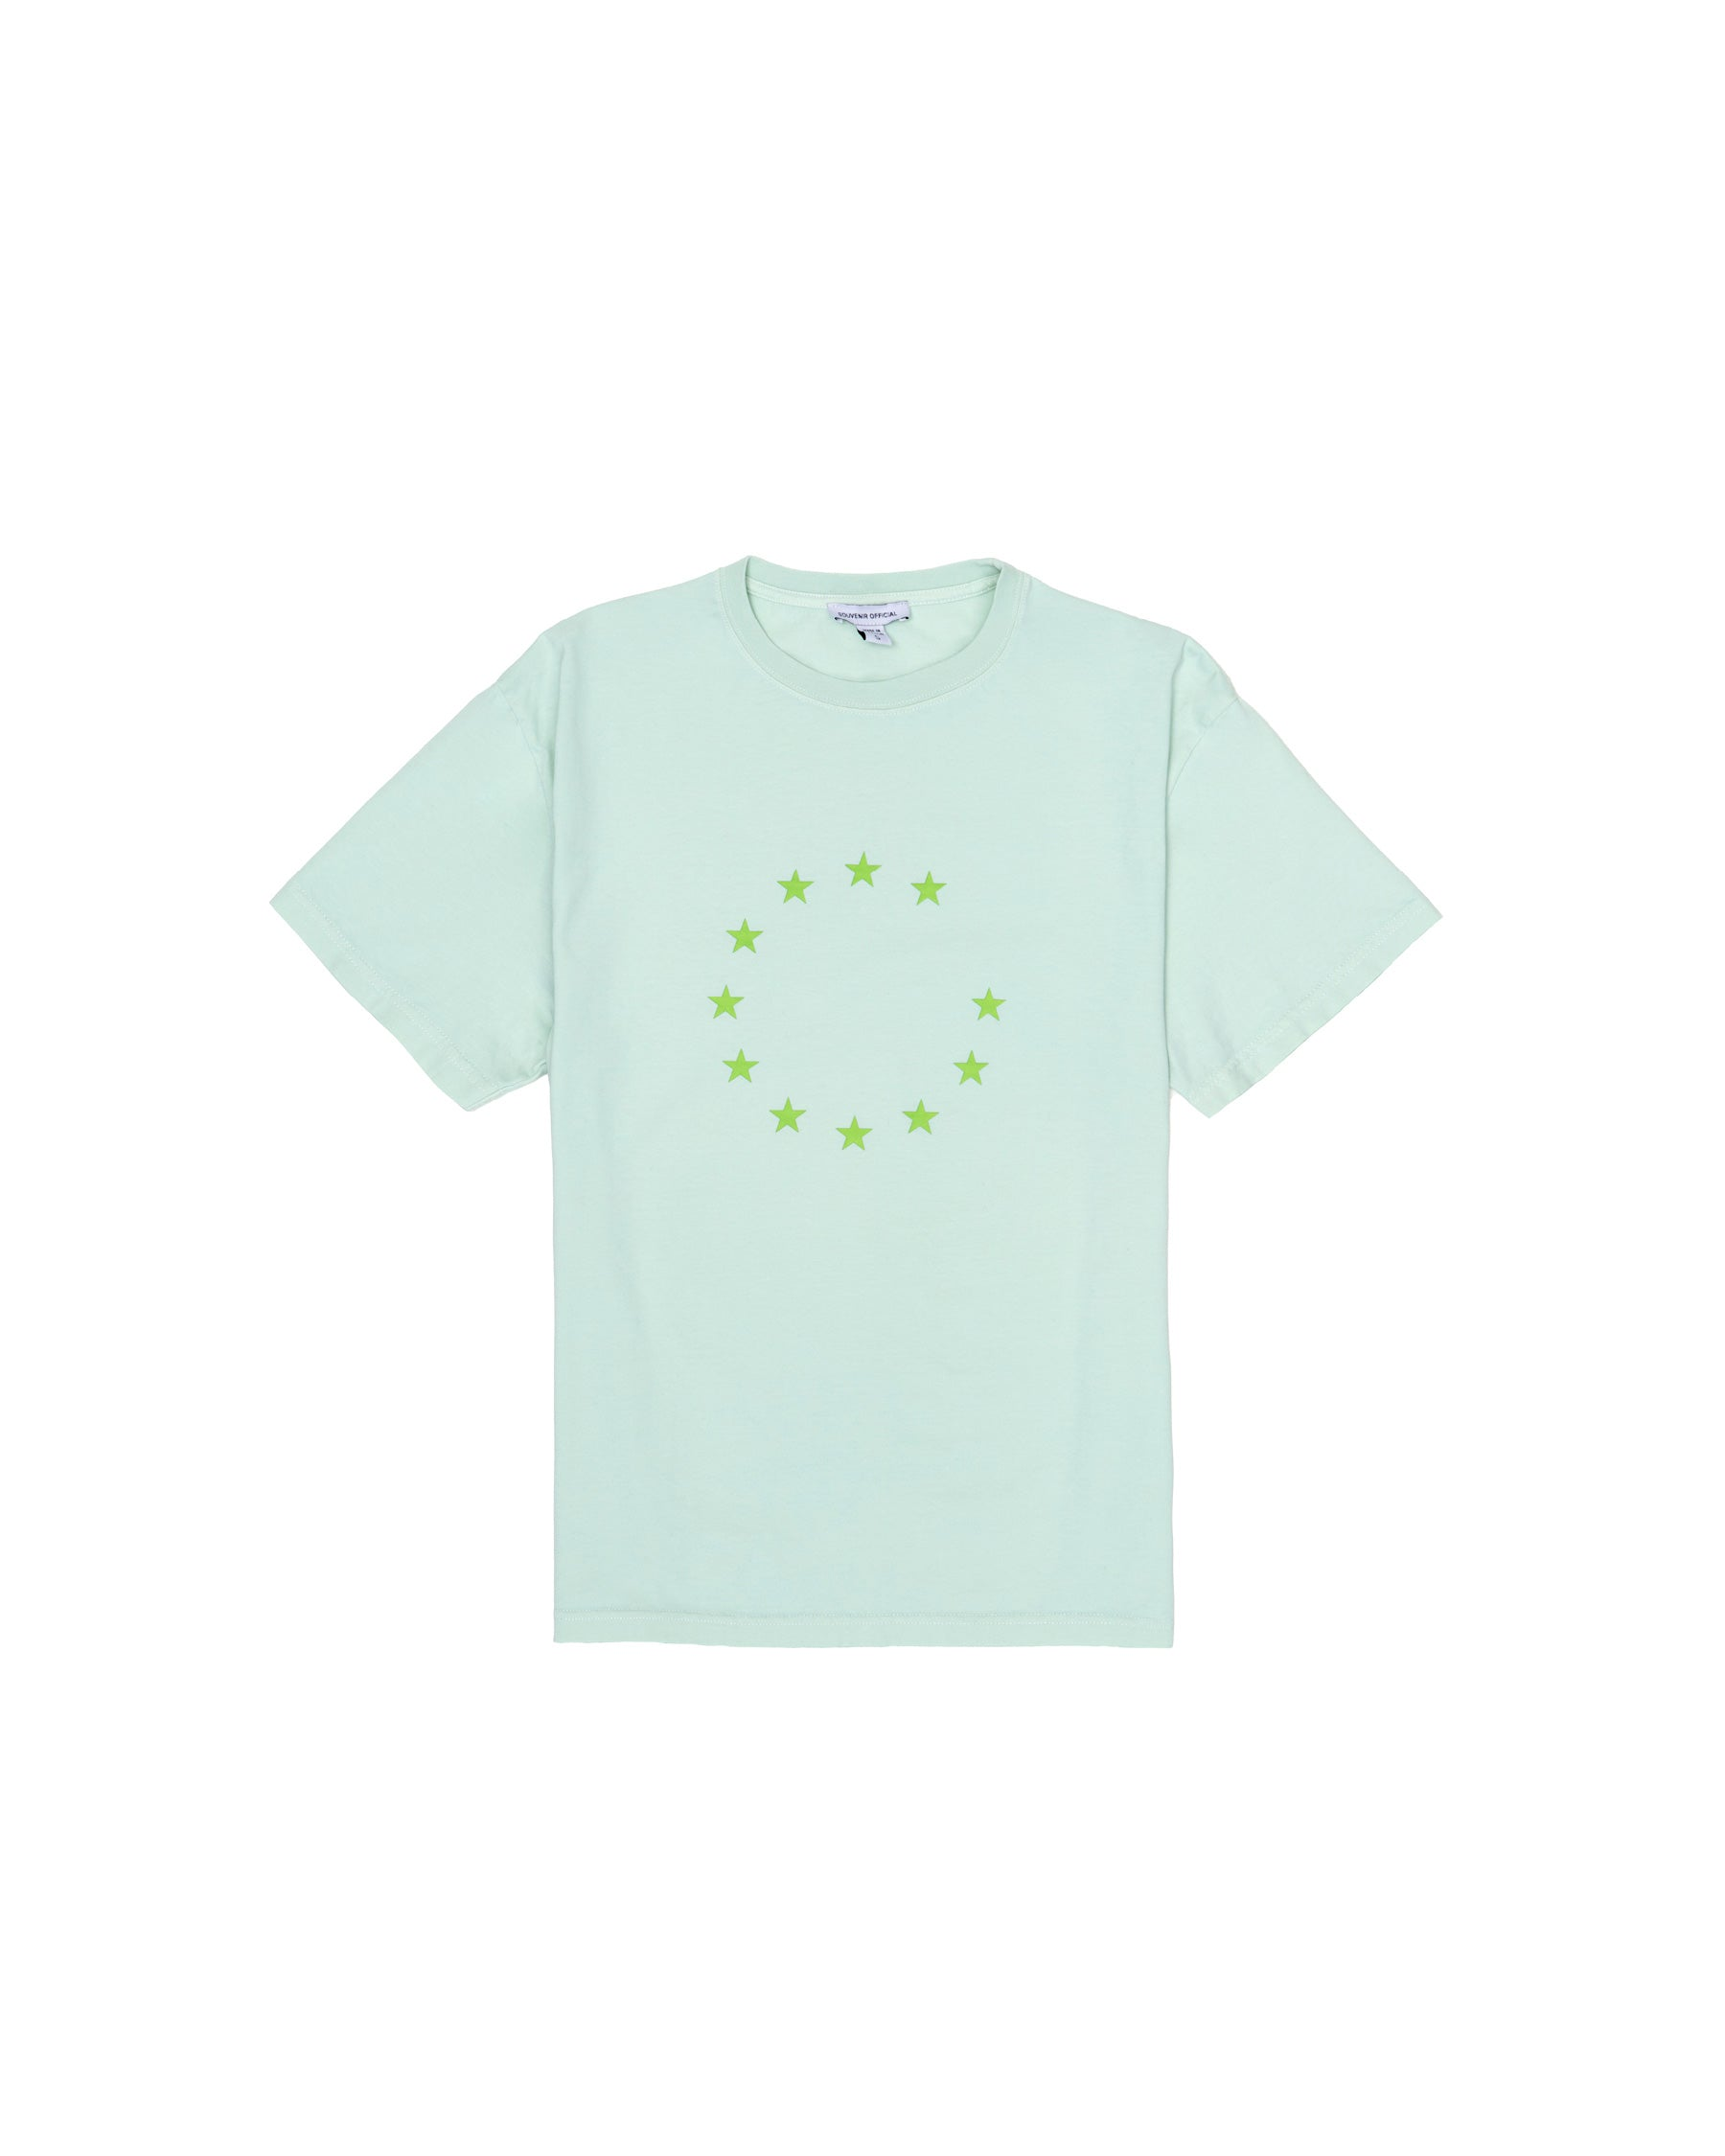 PROTECT PEACE T-SHIRT MISTY JADE